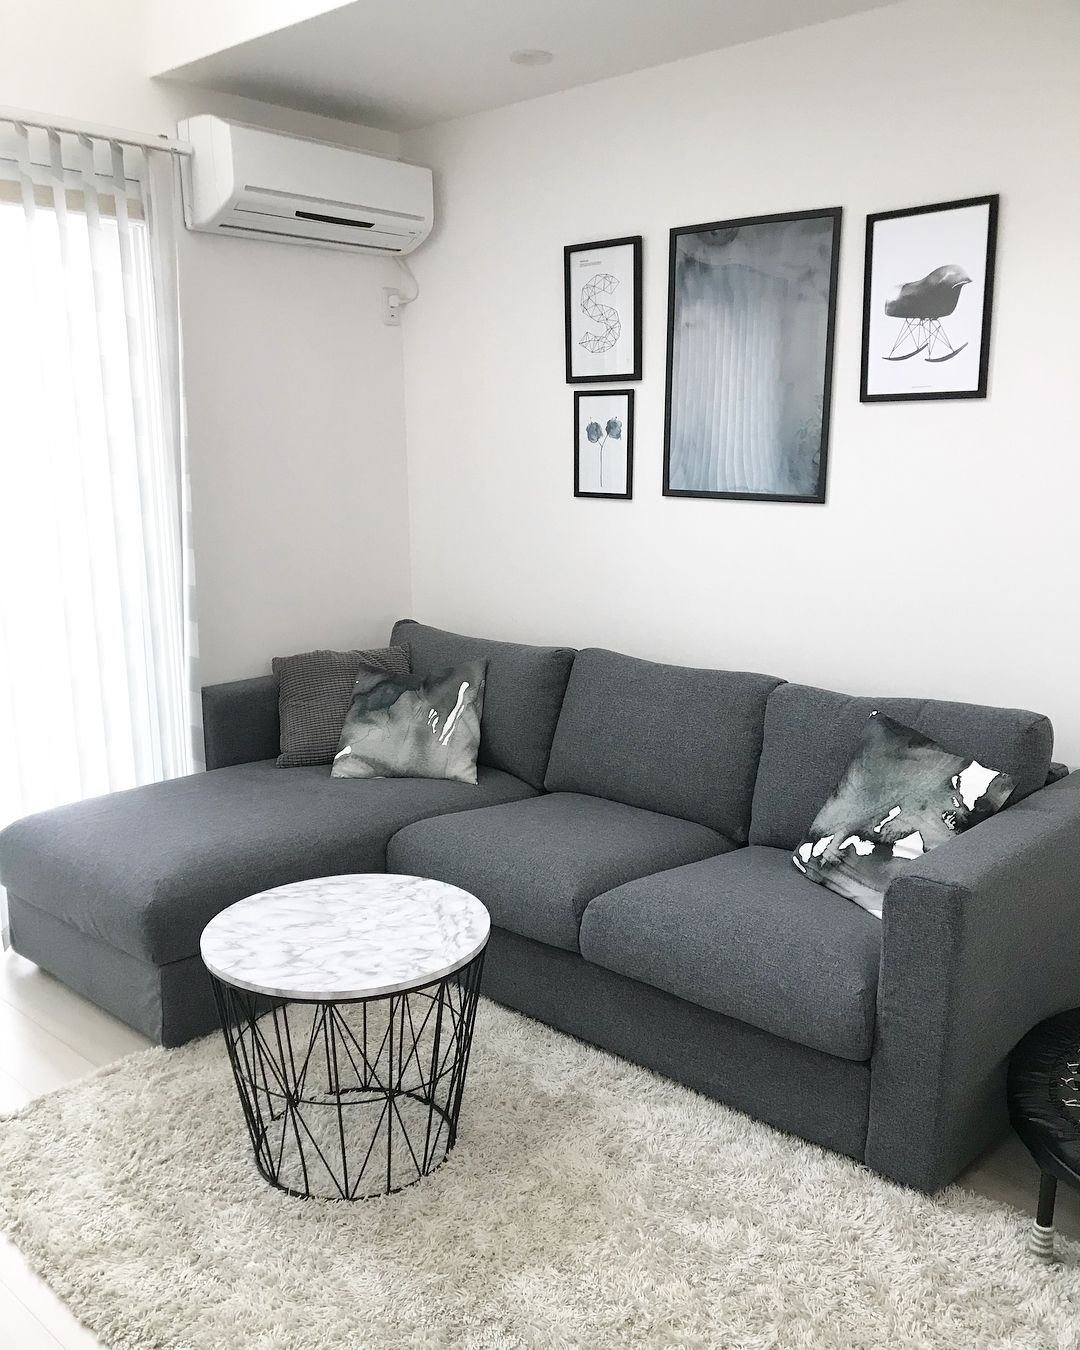 Ikea Vimle Sofa In Grey Design Layout Is Lovely Appartement Salon